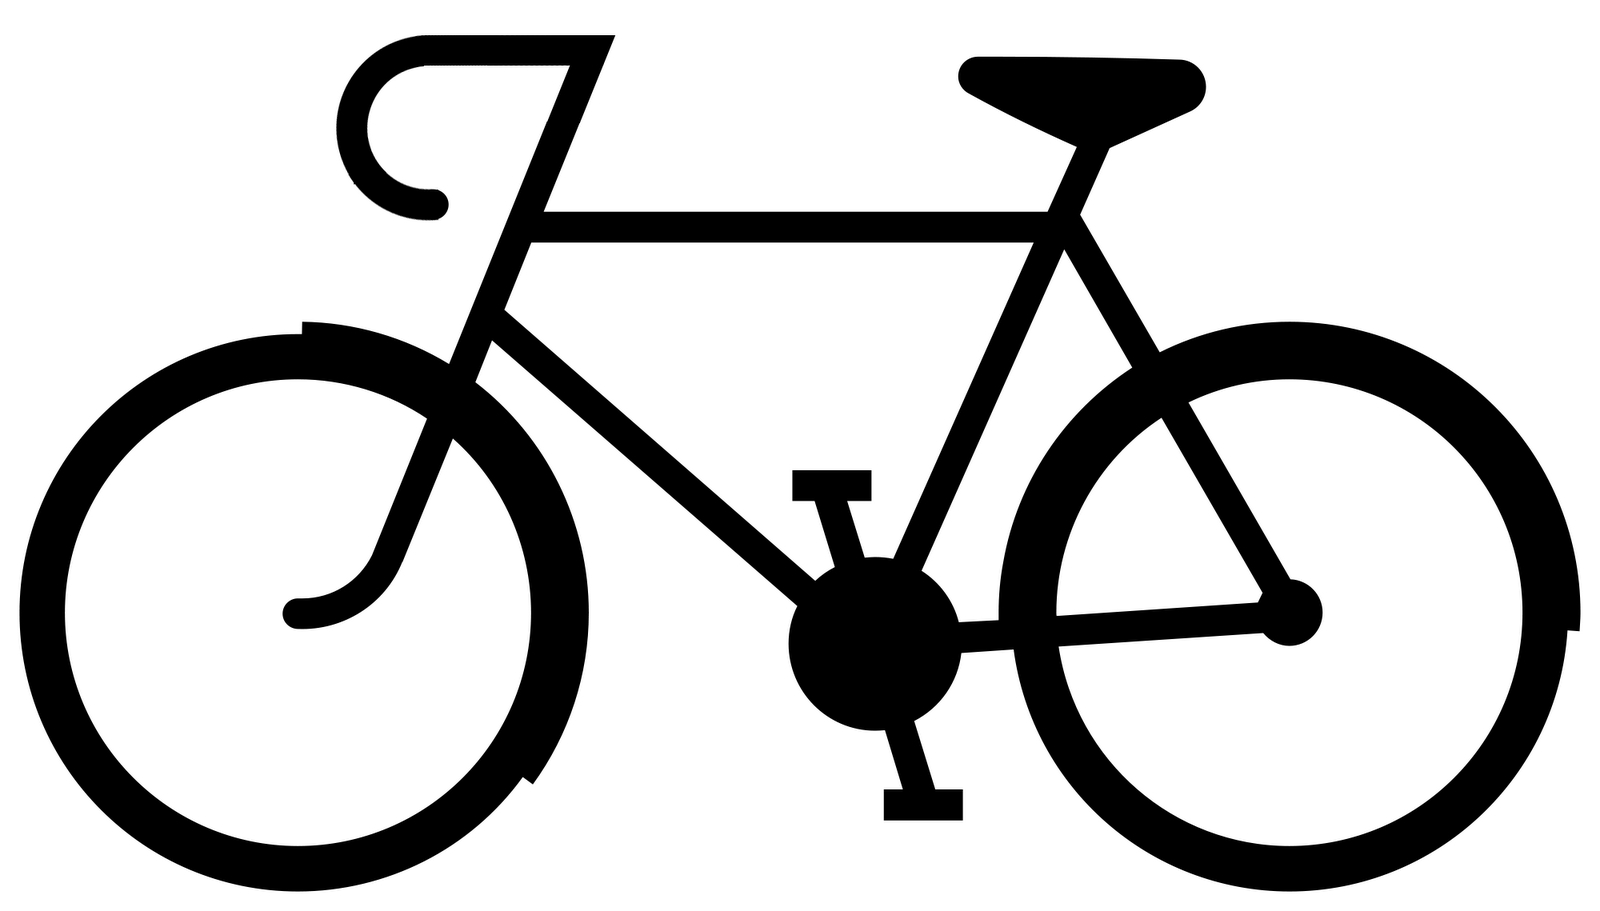 Biking clipart easy. Simple drawing of a